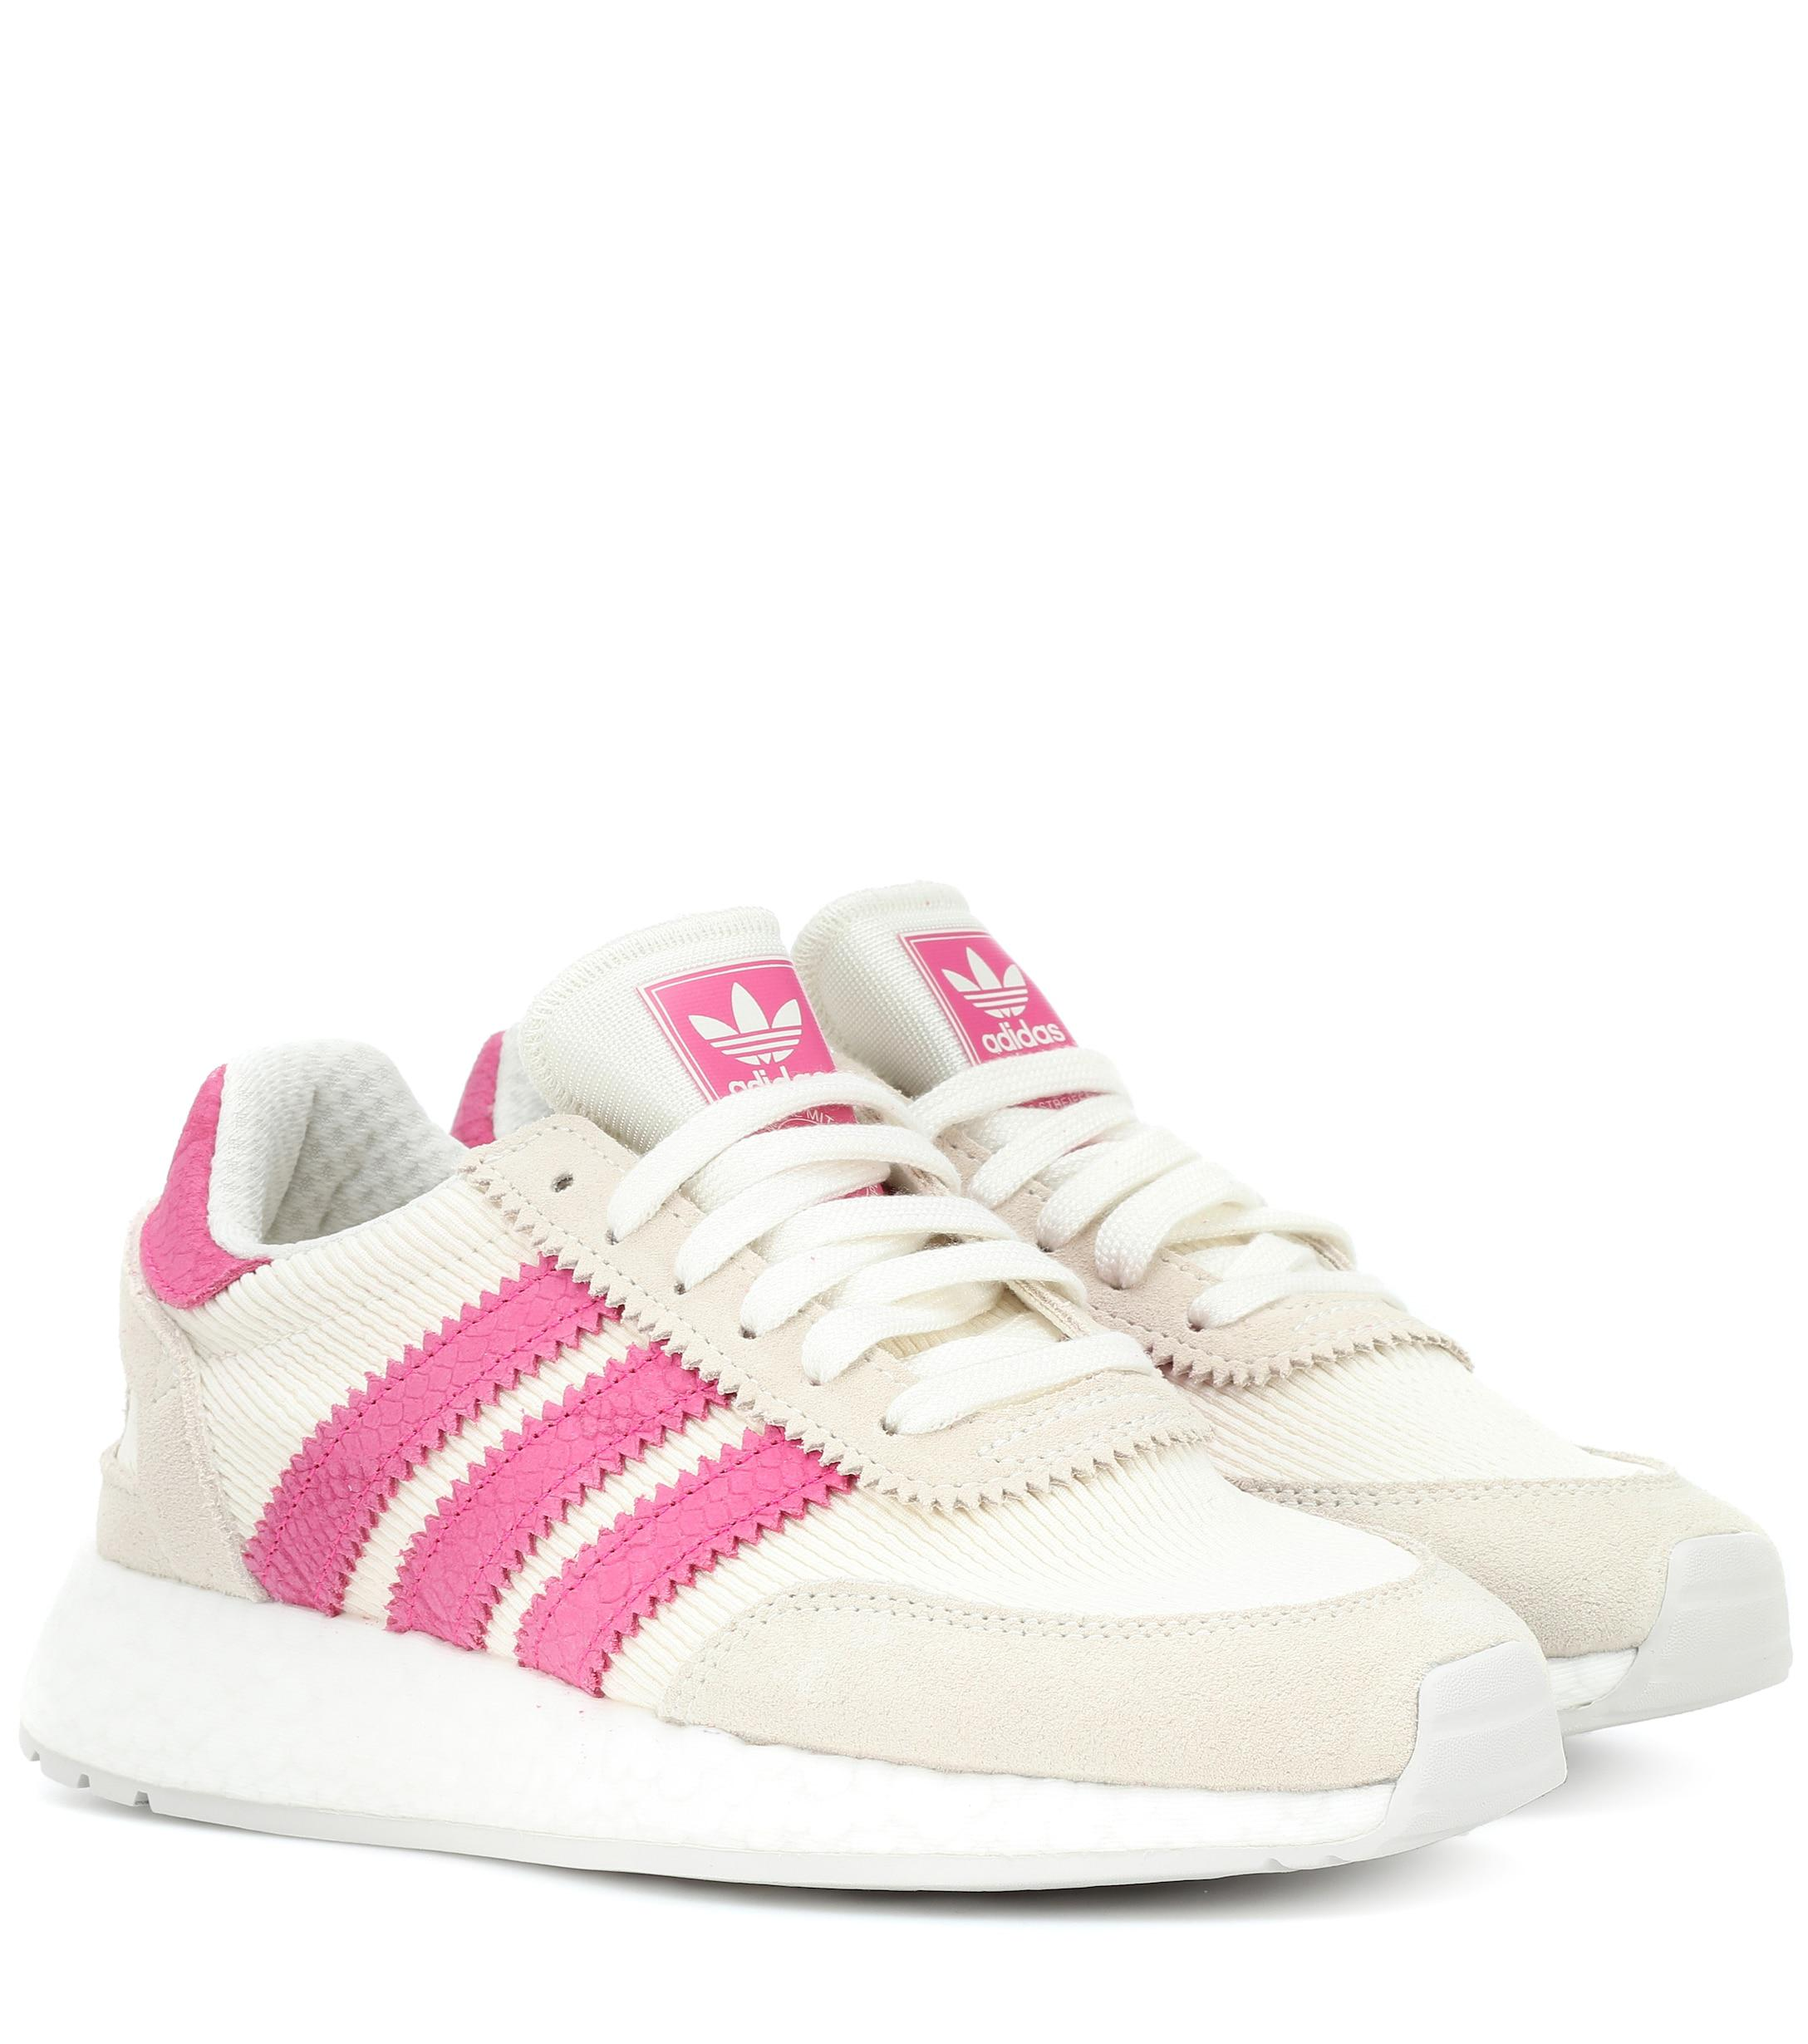 separation shoes 37f34 03367 Adidas Originals - Pink I-5923 Sneakers - Lyst. View fullscreen